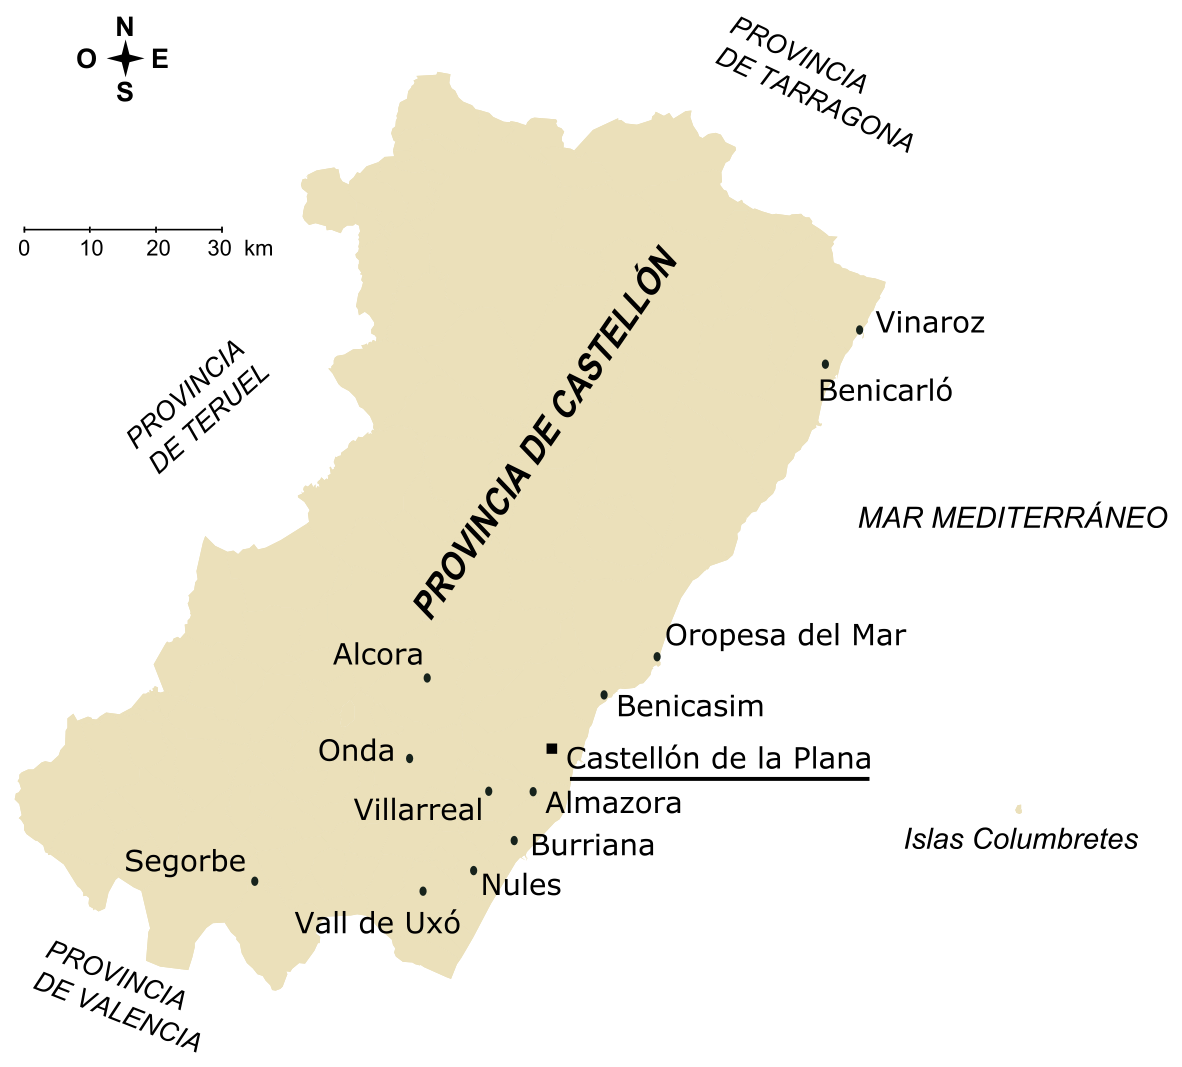 Cities of the province of Castellón 2005